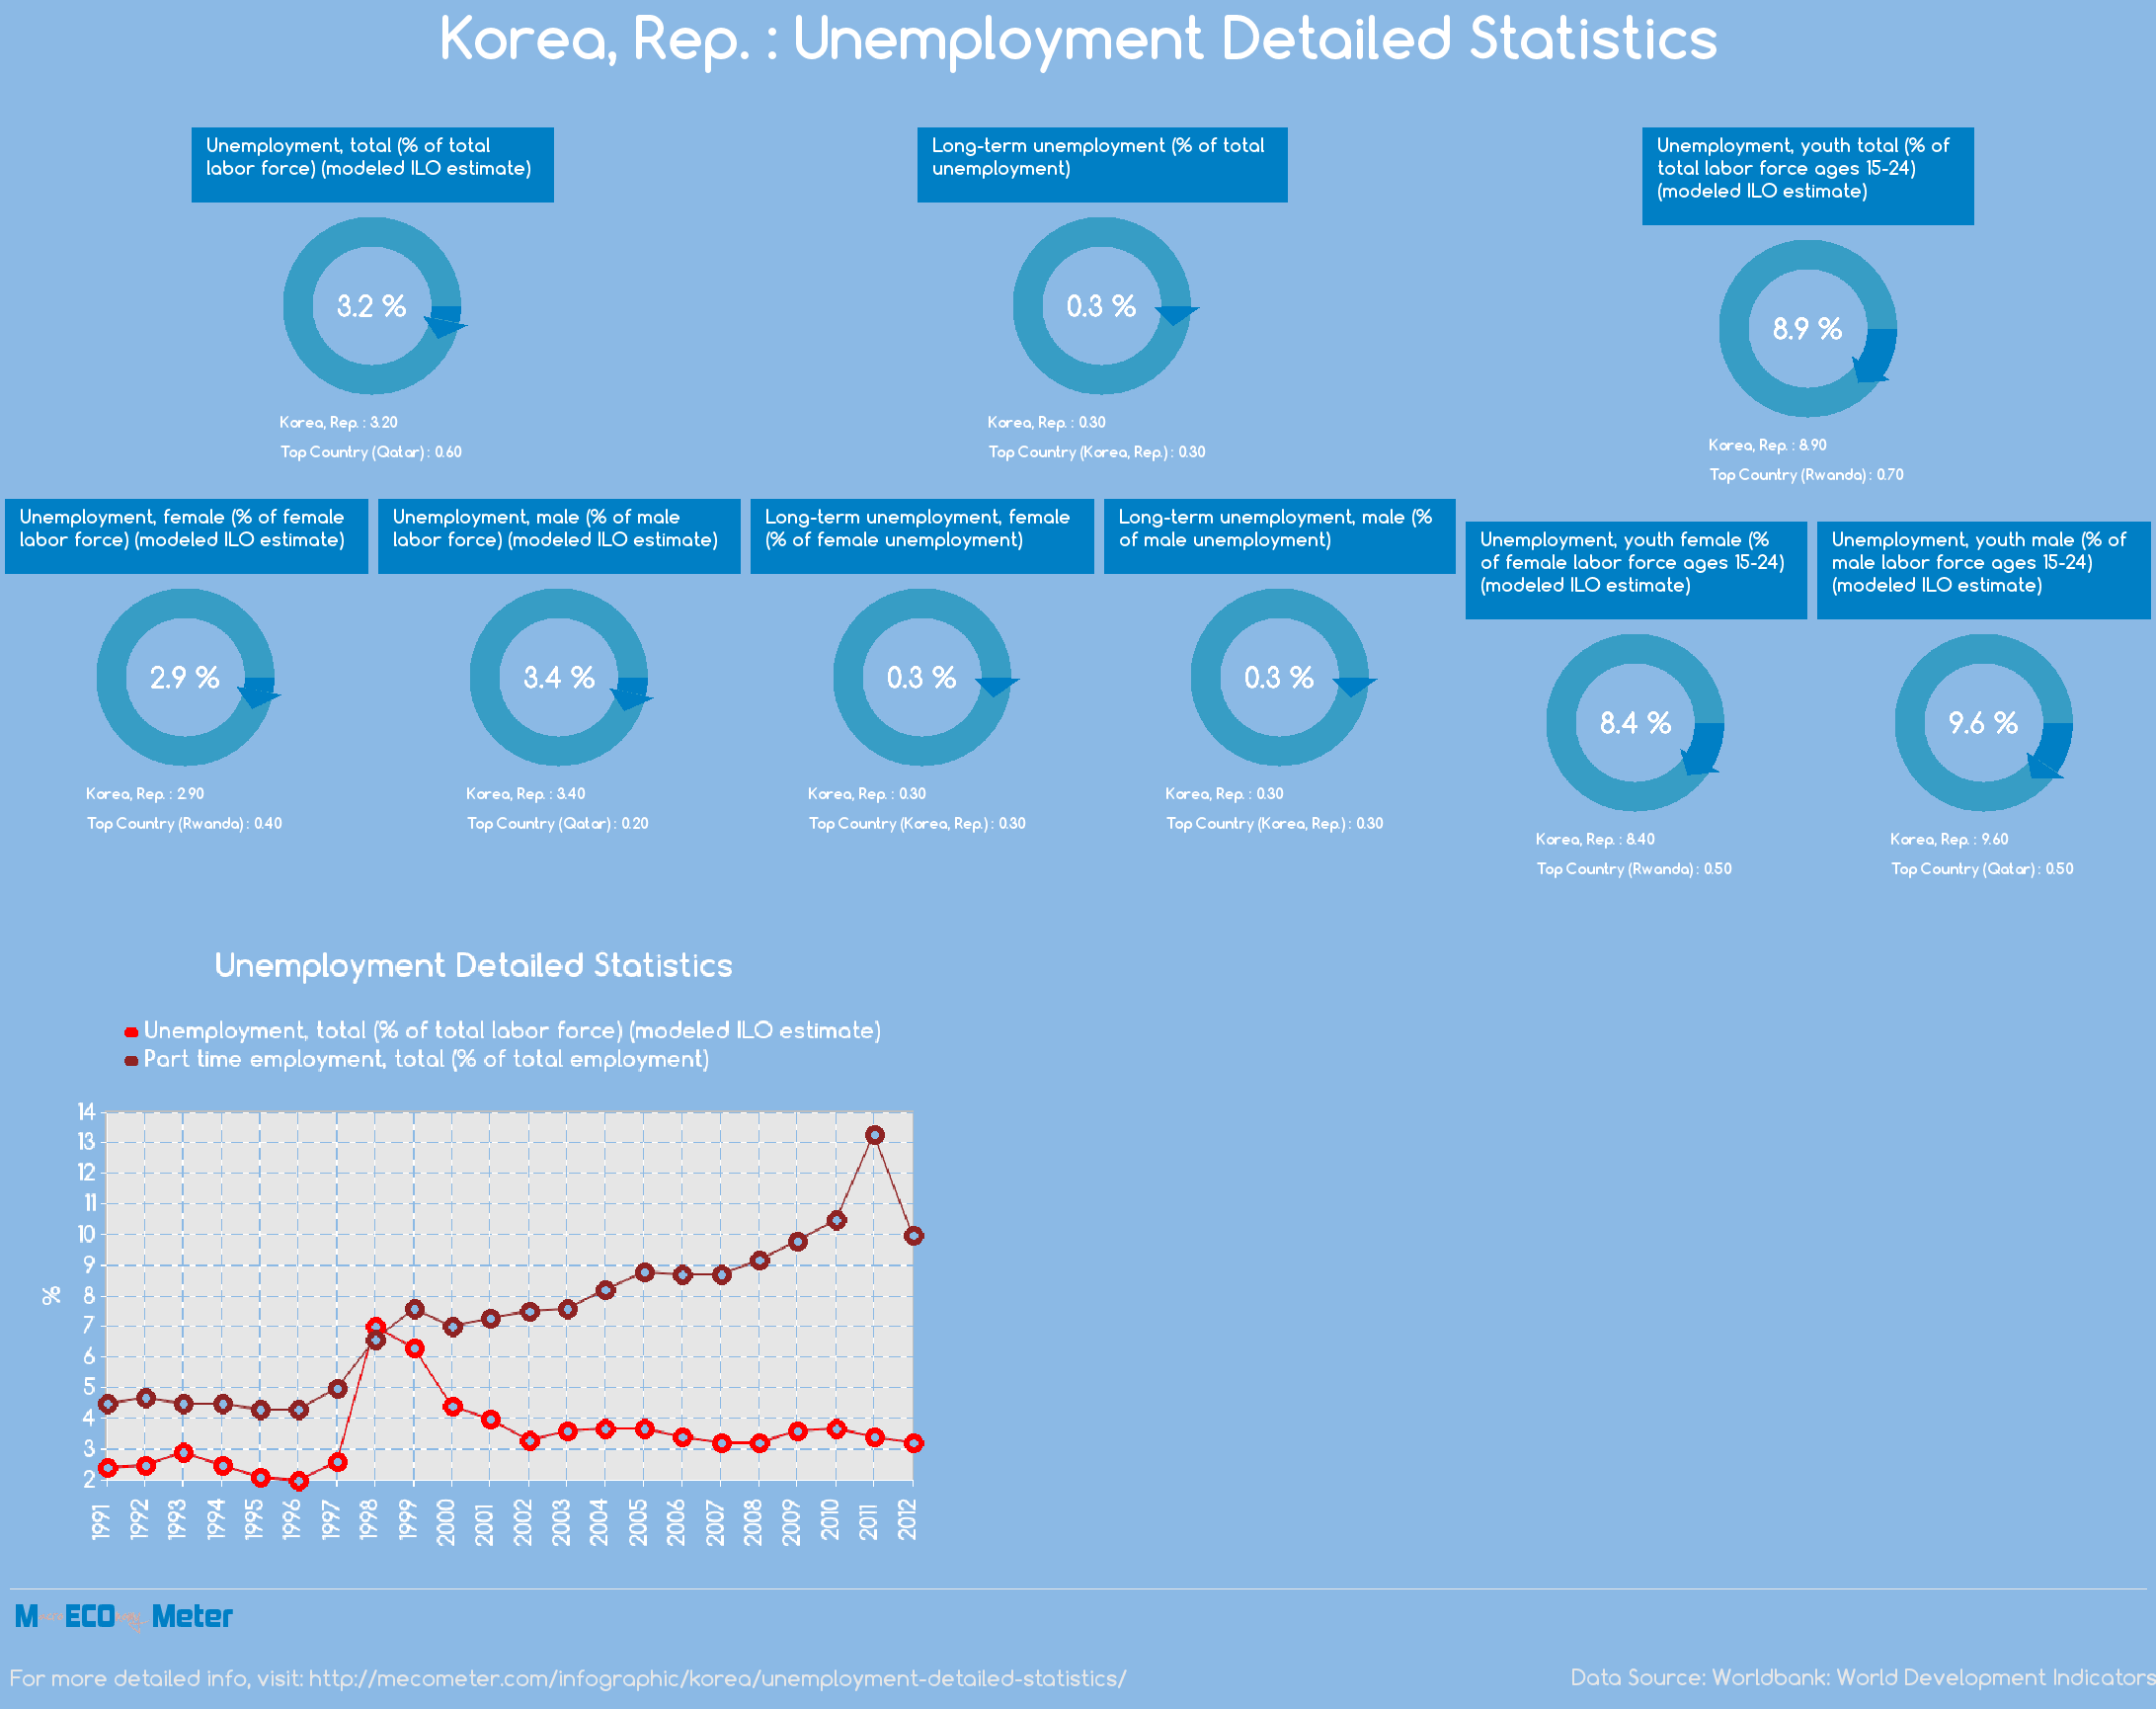 Korea, Rep. : Unemployment Detailed Statistics